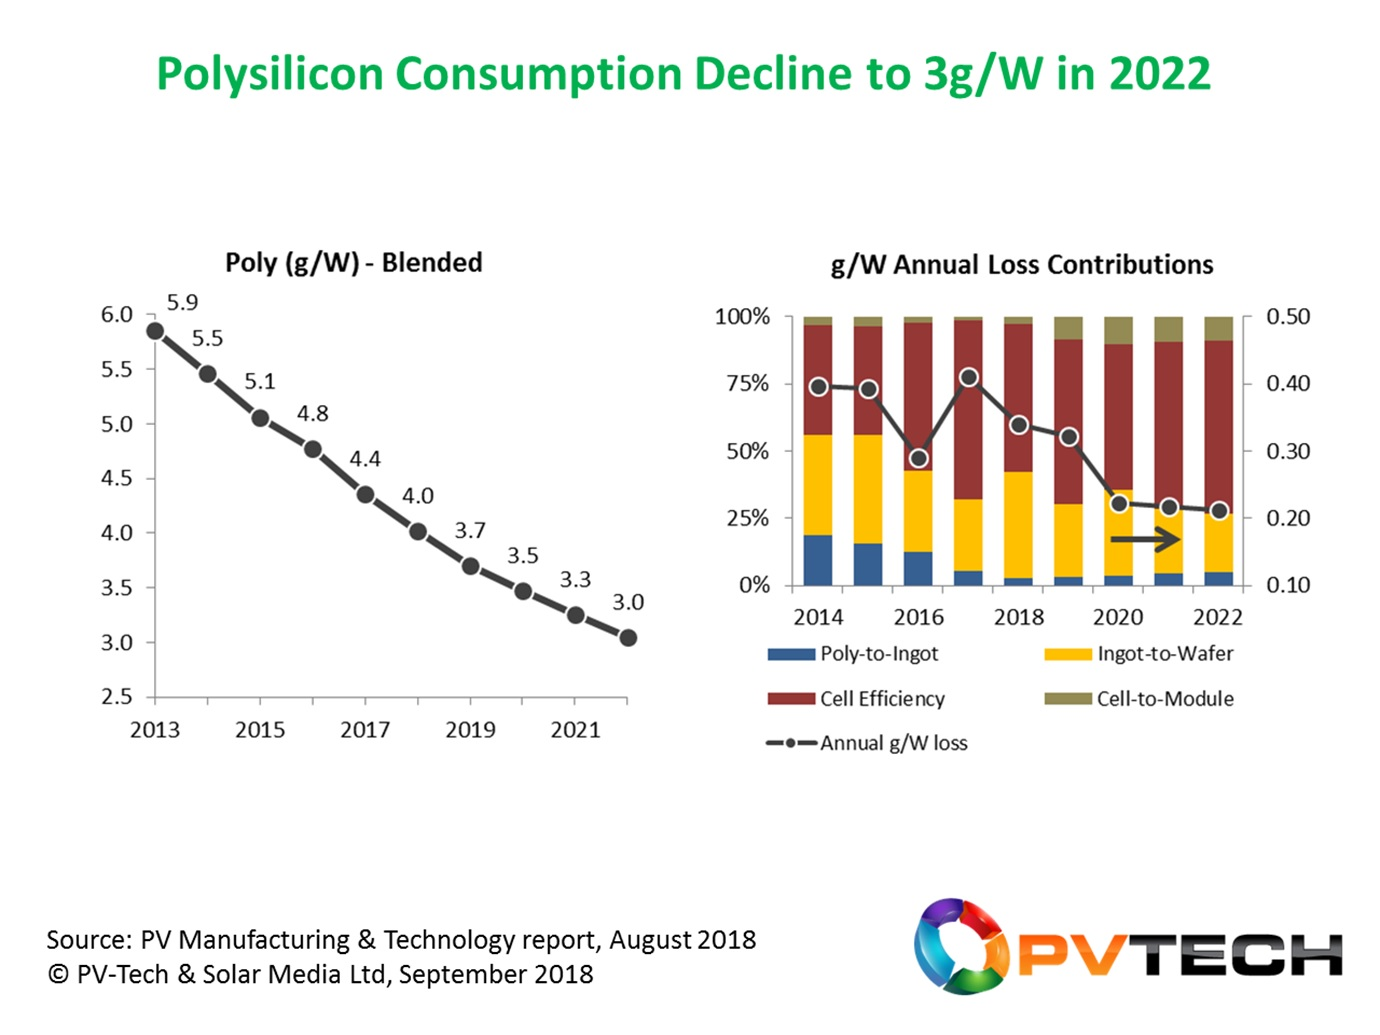 Assuming the industry is dominated by p-mono PERC for the next few years, by the time we get to the end of 2022, polysilicon consumption will have fallen in half over ten years, from approx. 6g/W at the end of 2012 to below 3g/W by the end of 2022.